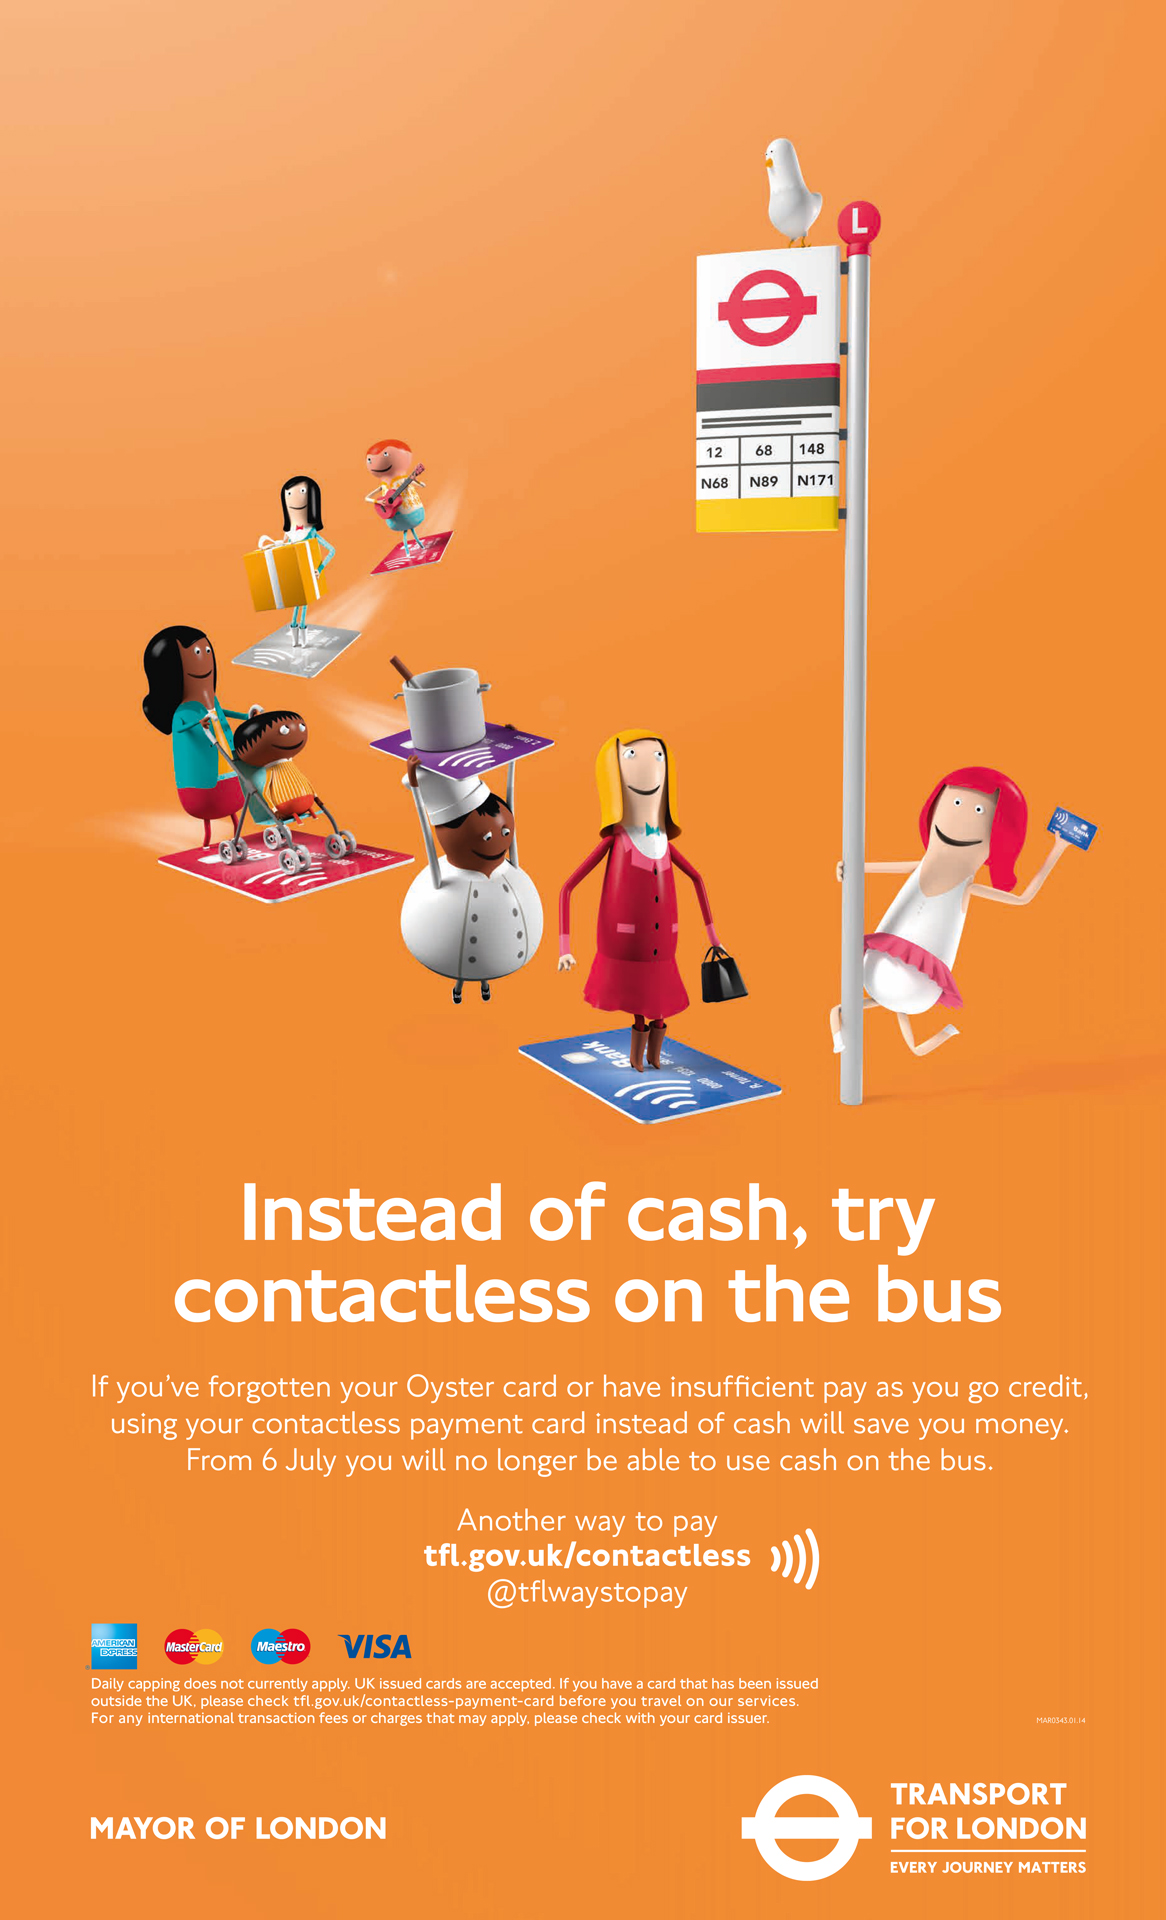 More about contactless